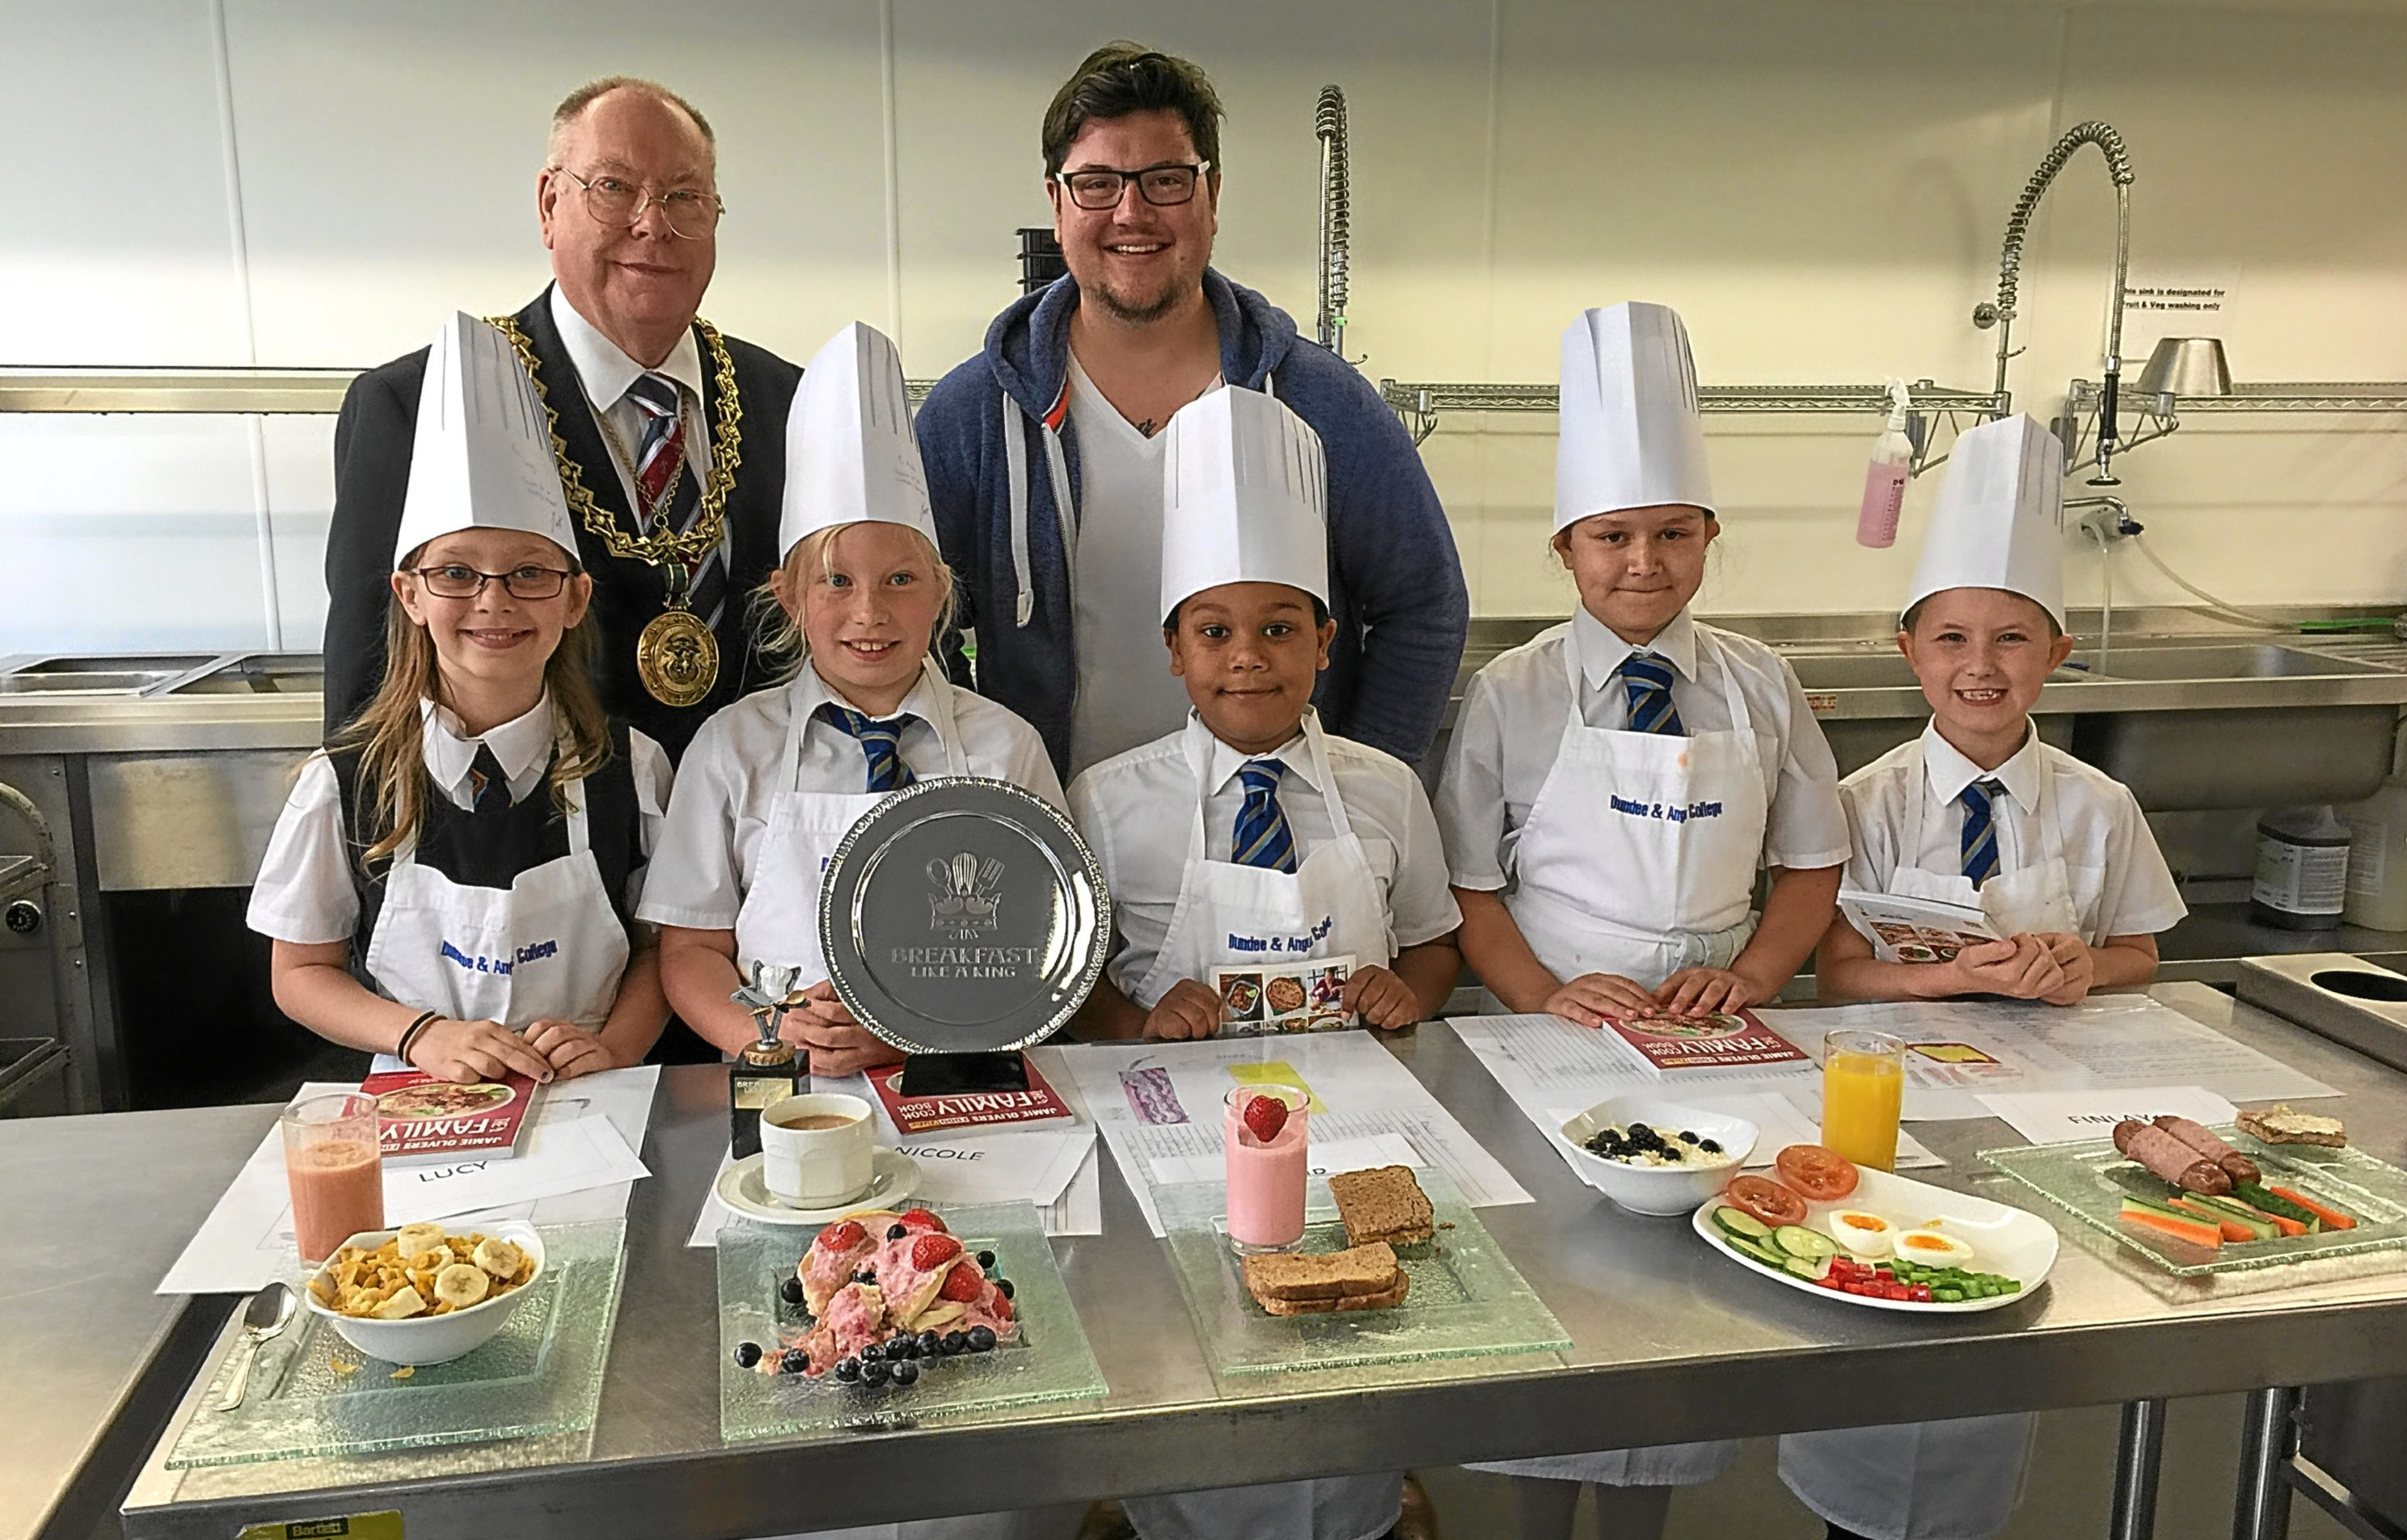 Breakfast for a King at D&A College: Judged by Lord Provost Bob Duncan and Masterchef 2014 winner, Jamie Scott, a former college student, finallists (from left): Lucy Clark, Nicole Paszkier, with the winner's trophy, Philip Wieczorek, Zosia Mazanik and Finlay McBrearty.